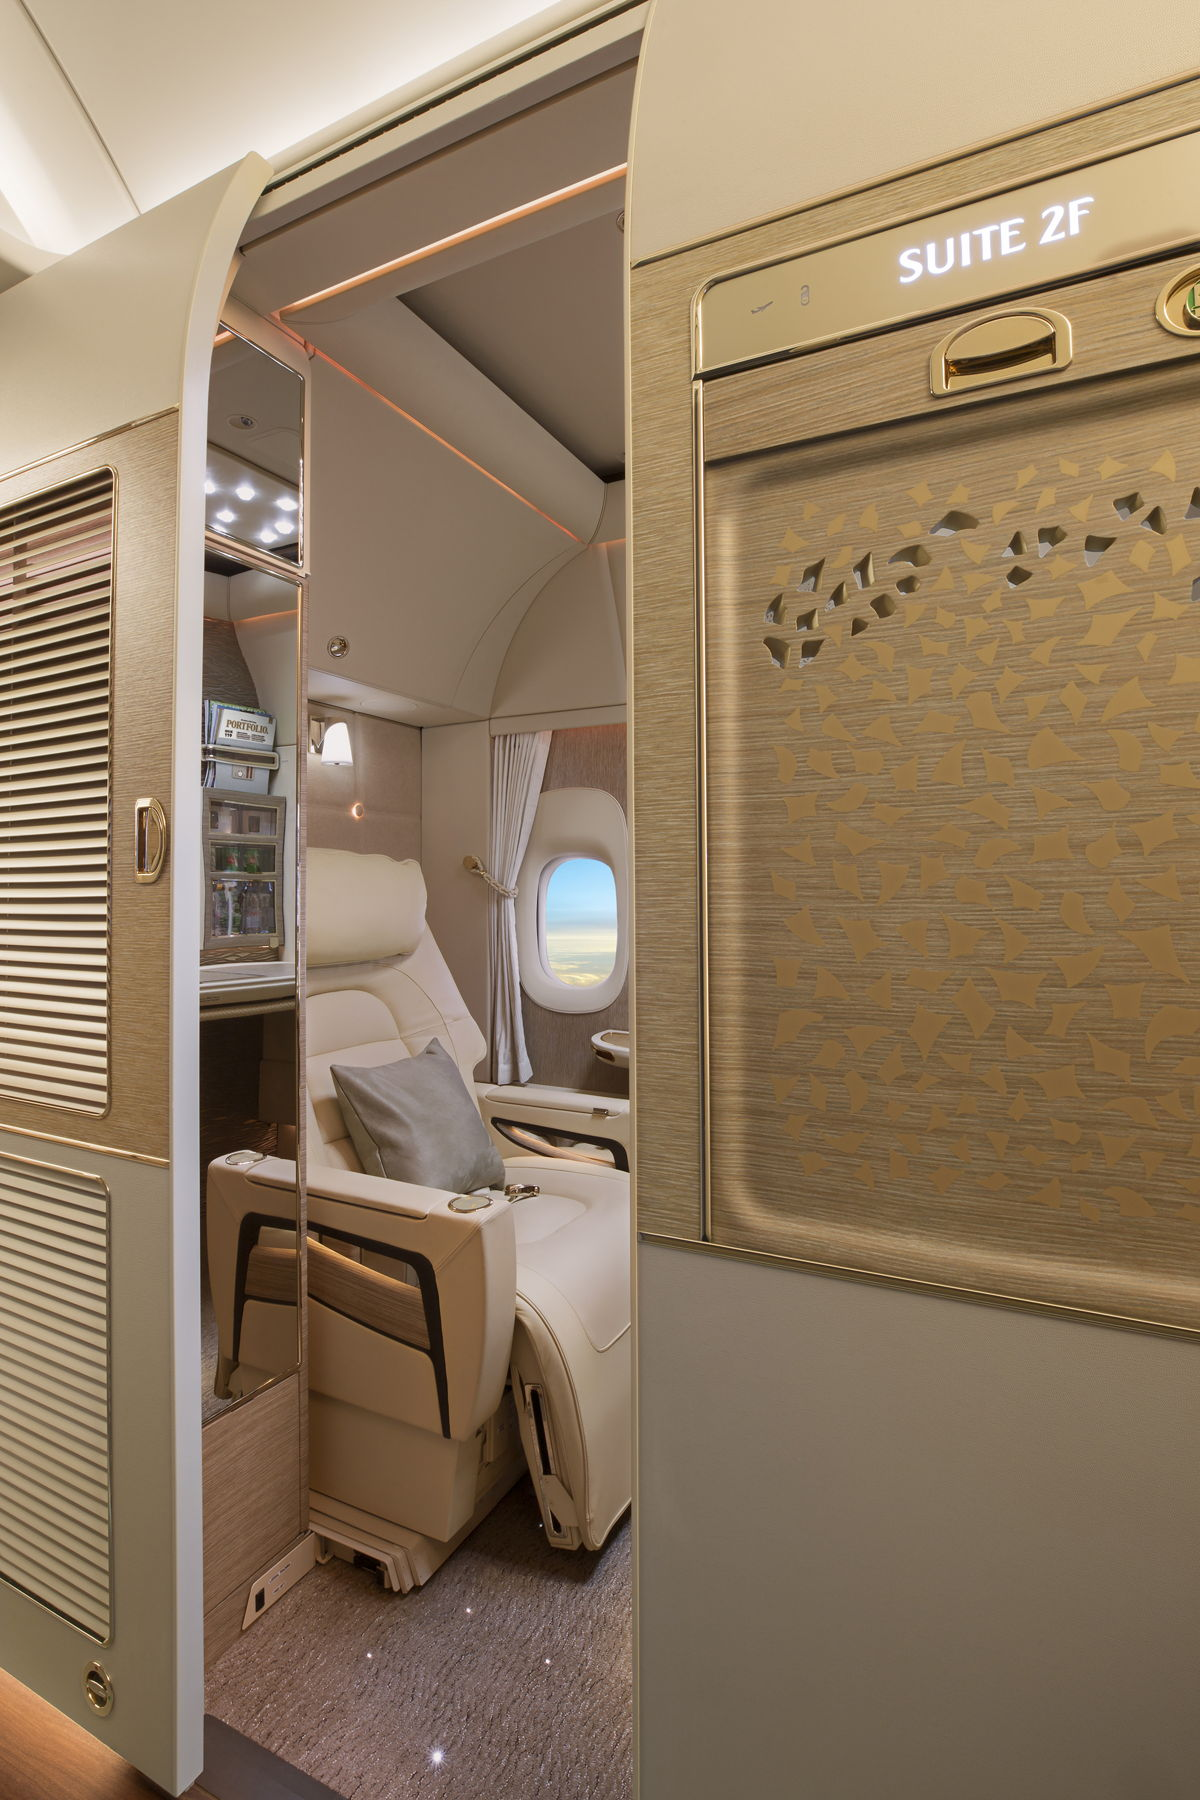 Fully enclosed private suites